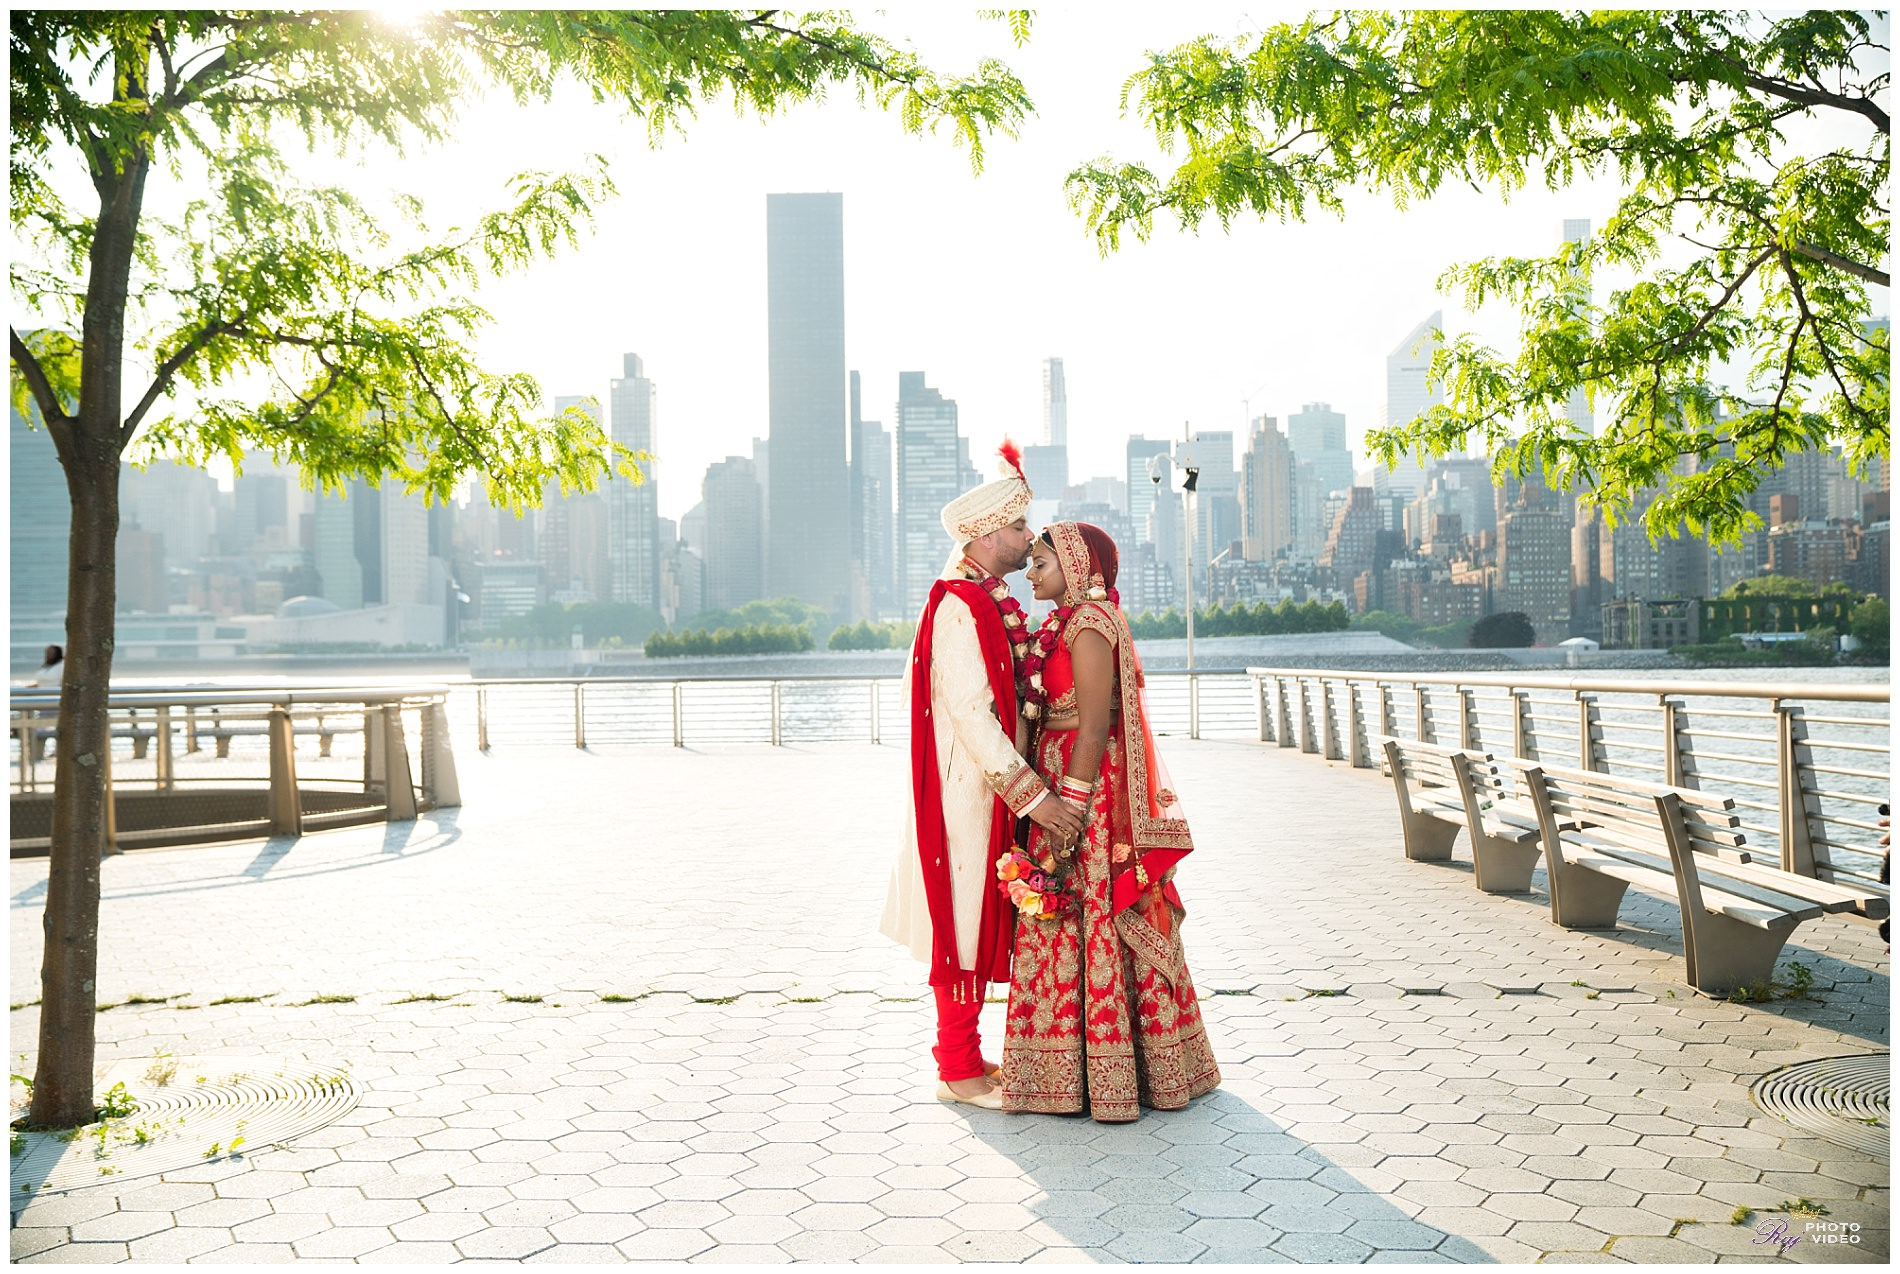 Gantry-State-Plaza-Park-Bridal-Party-Shoot-Diana-Shaun-7.jpg